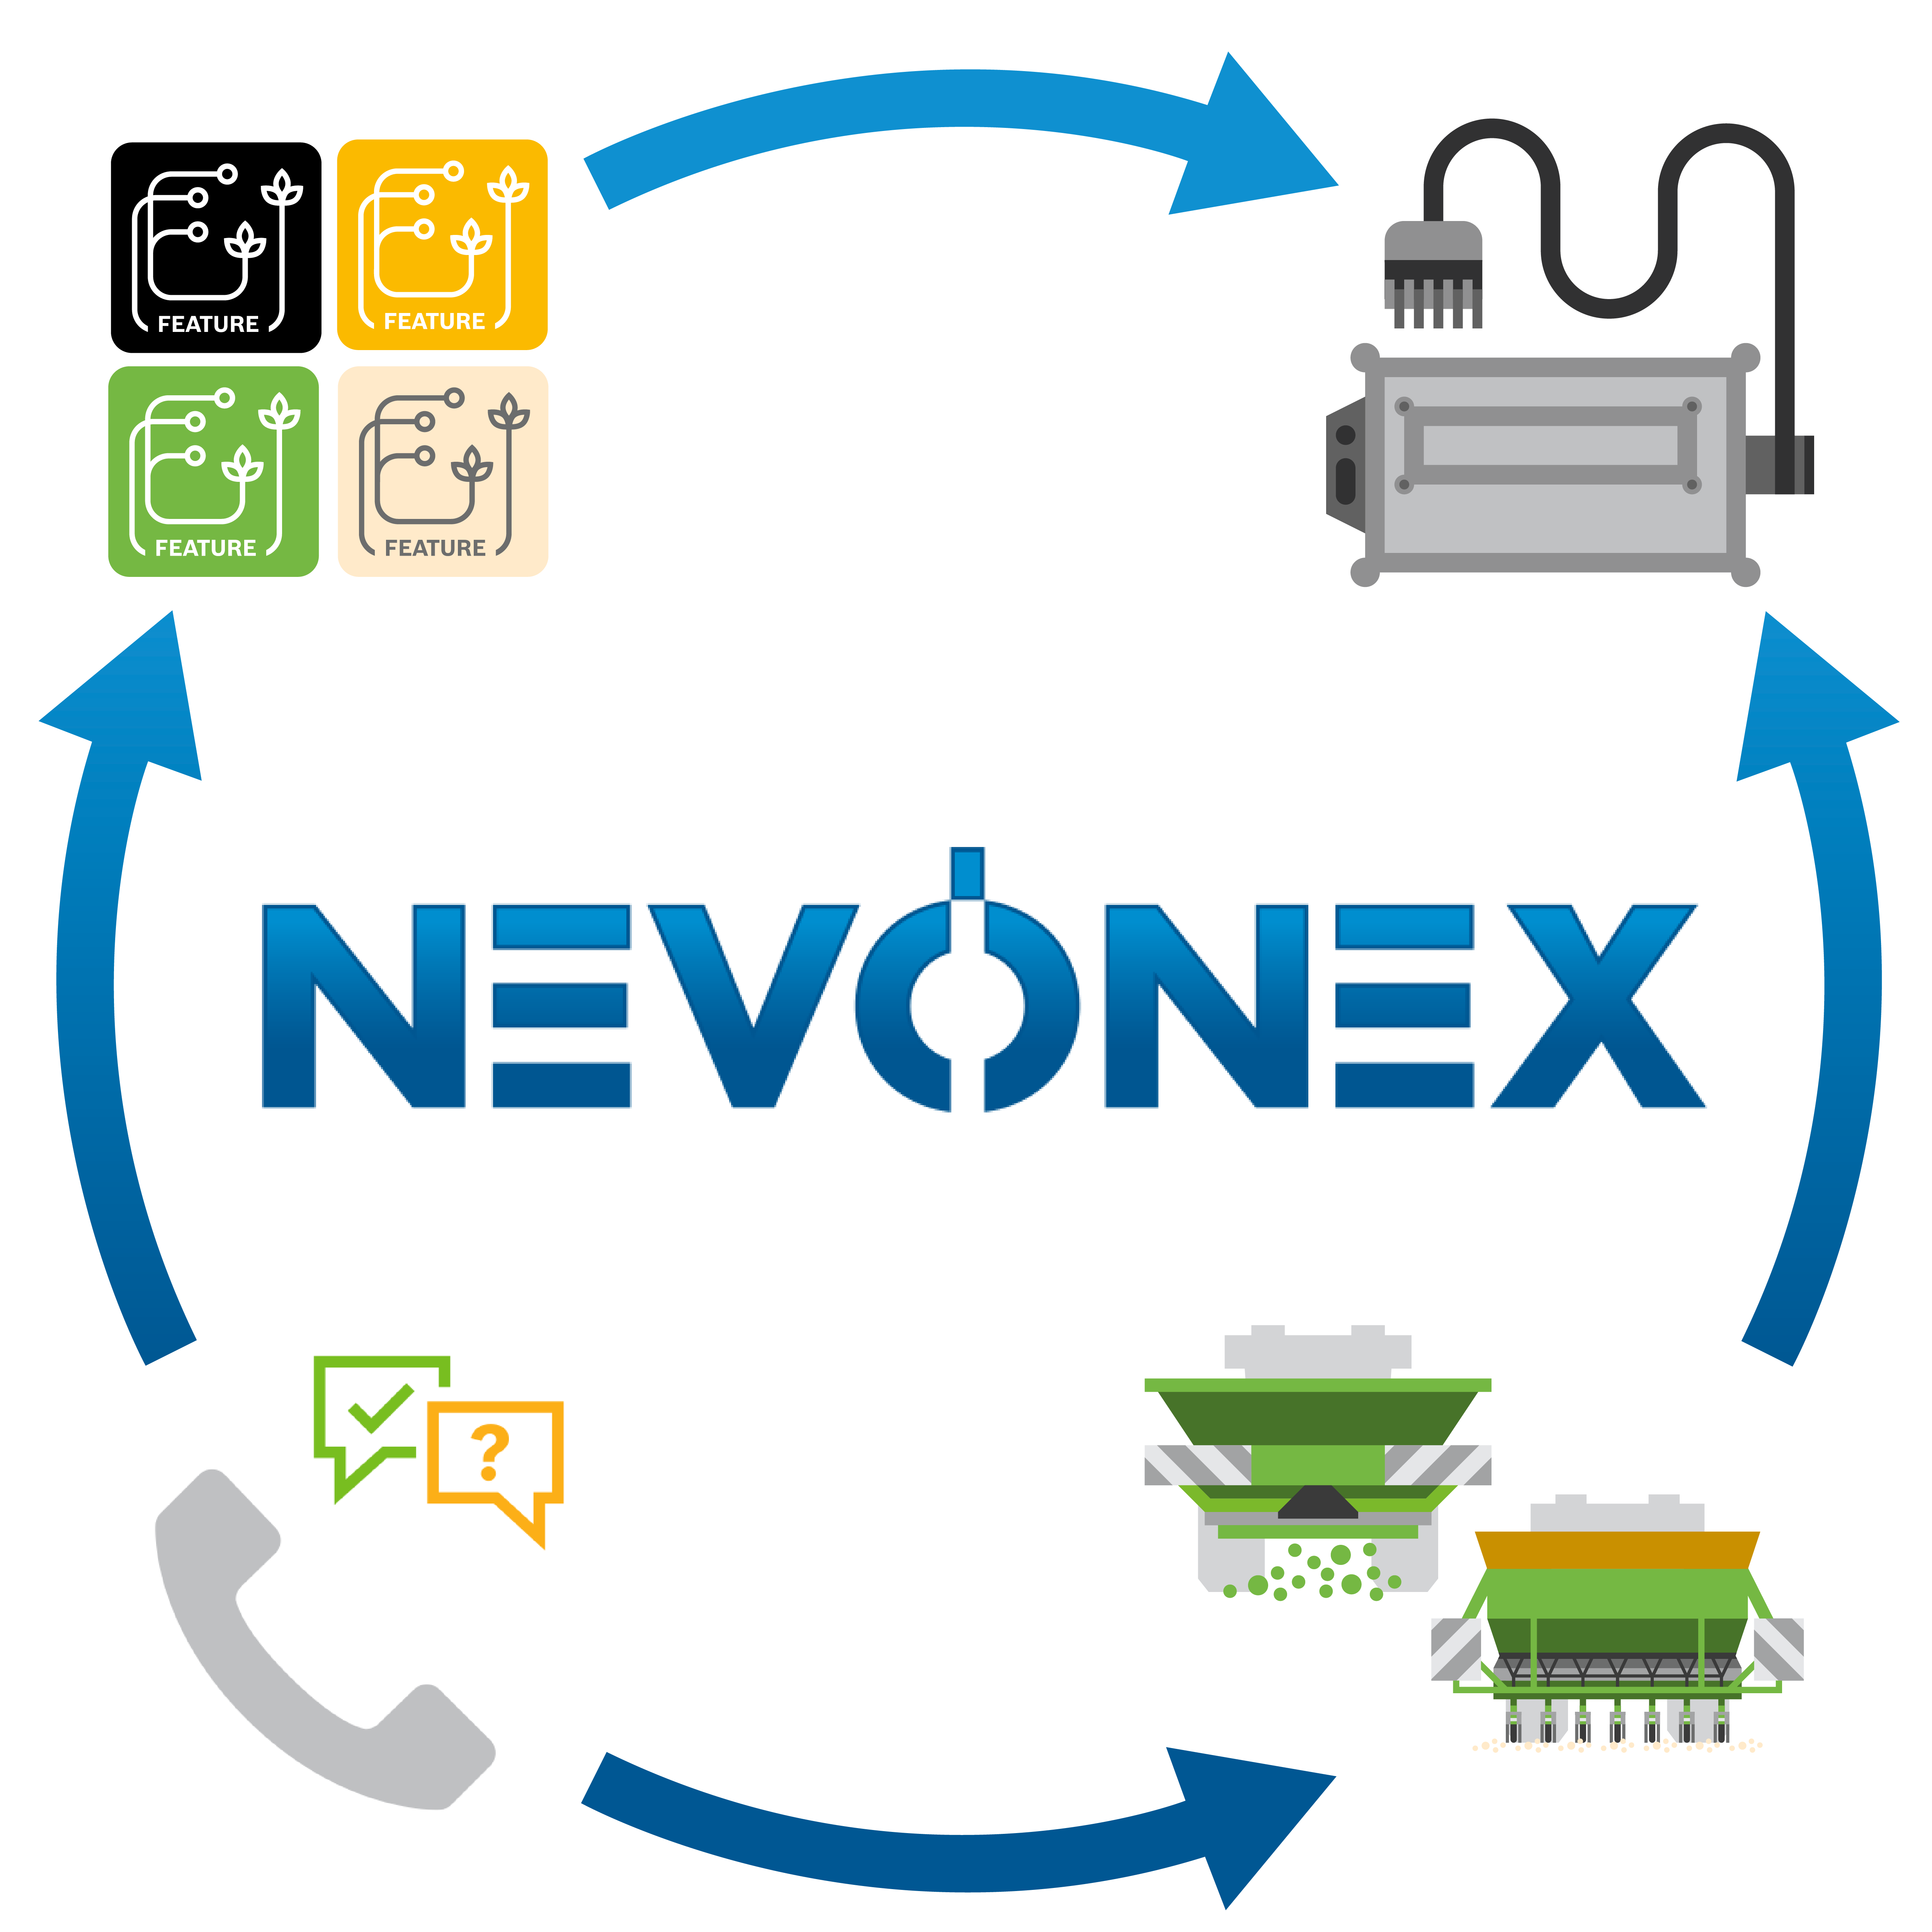 The core of NEVONEX are the application softwares, which are called FEATURES in the NEVONEX ecosystem.